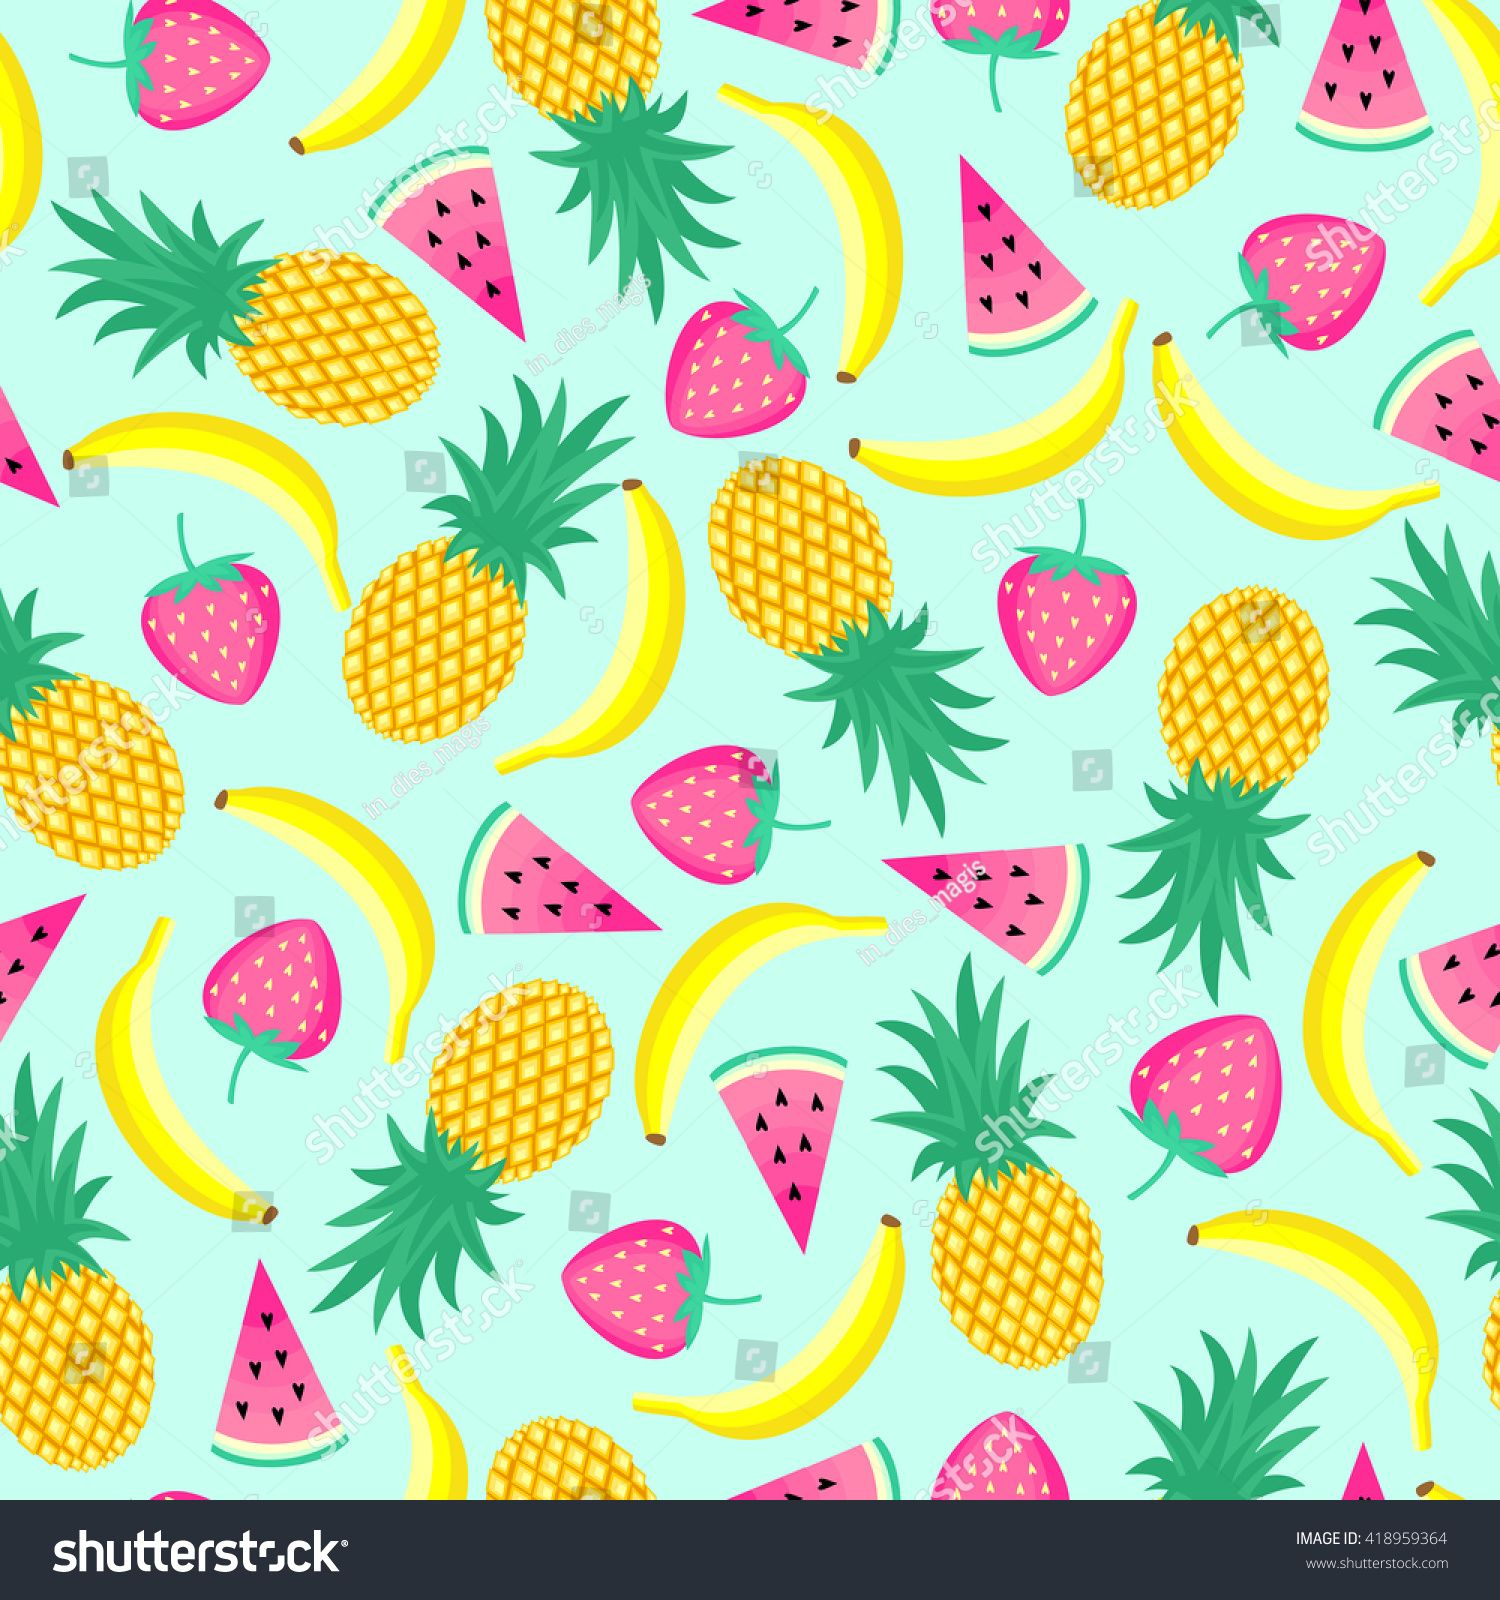 Seamless Pattern With Yellow Bananas Pineapples And Juicy Strawberries On Mint Green Background Cu Fruit Illustration Mint Green Background Seamless Patterns